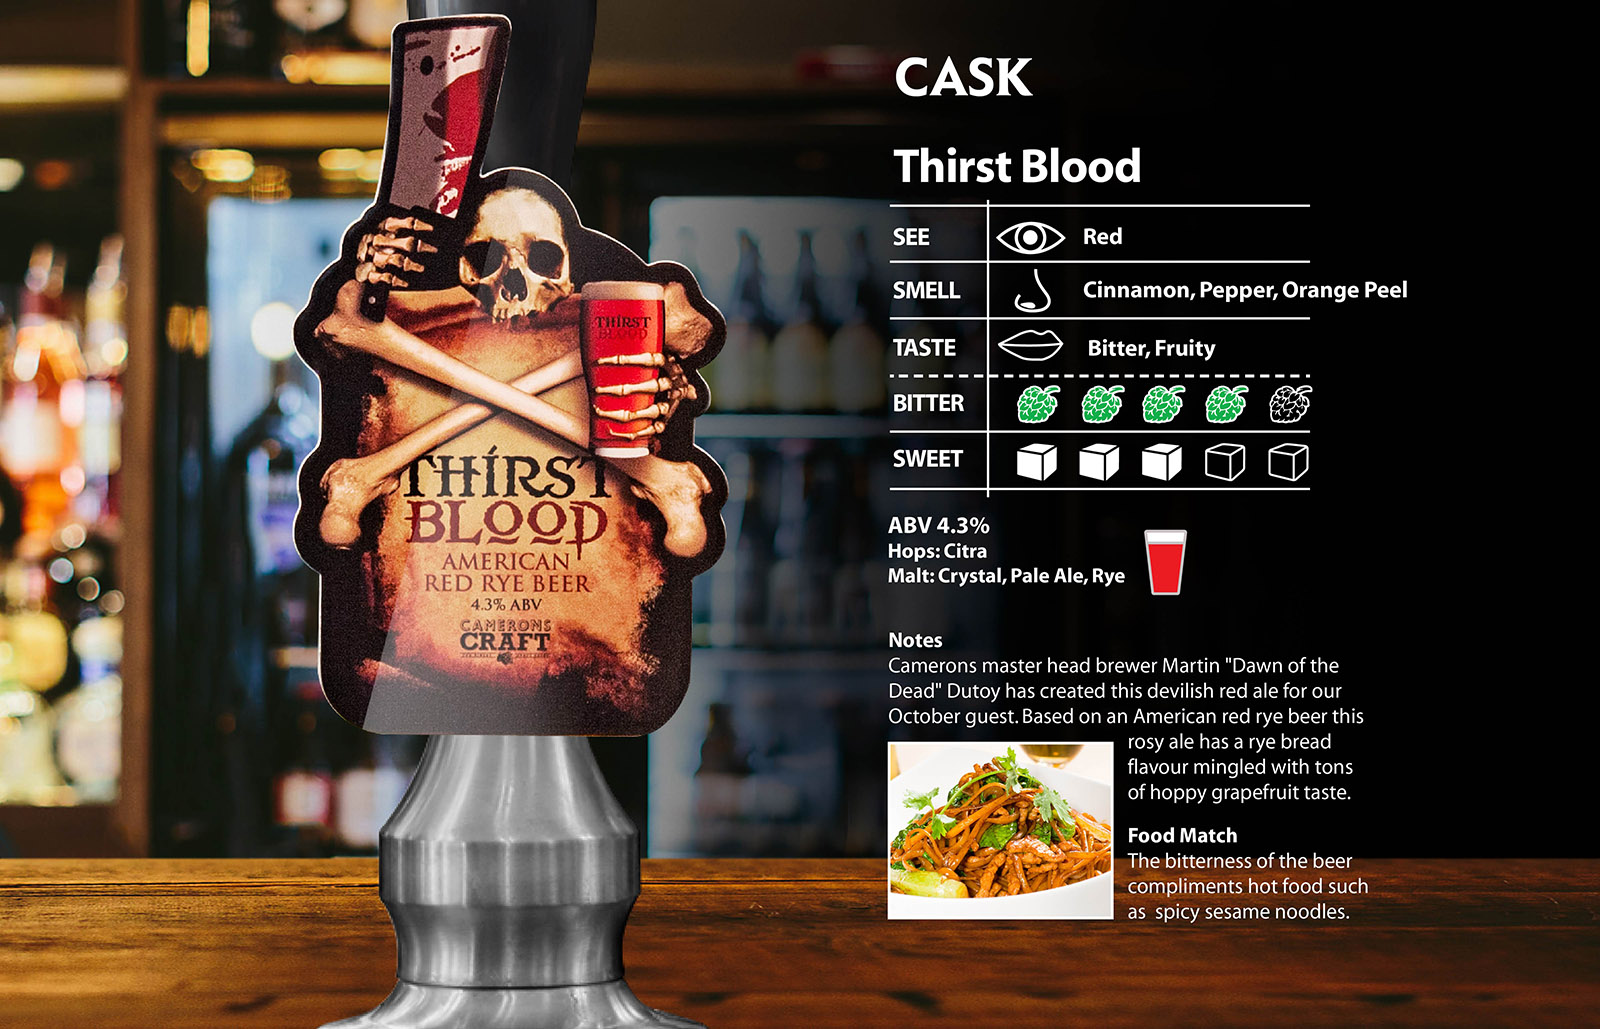 Thirst Blood - cask - camerons brewery